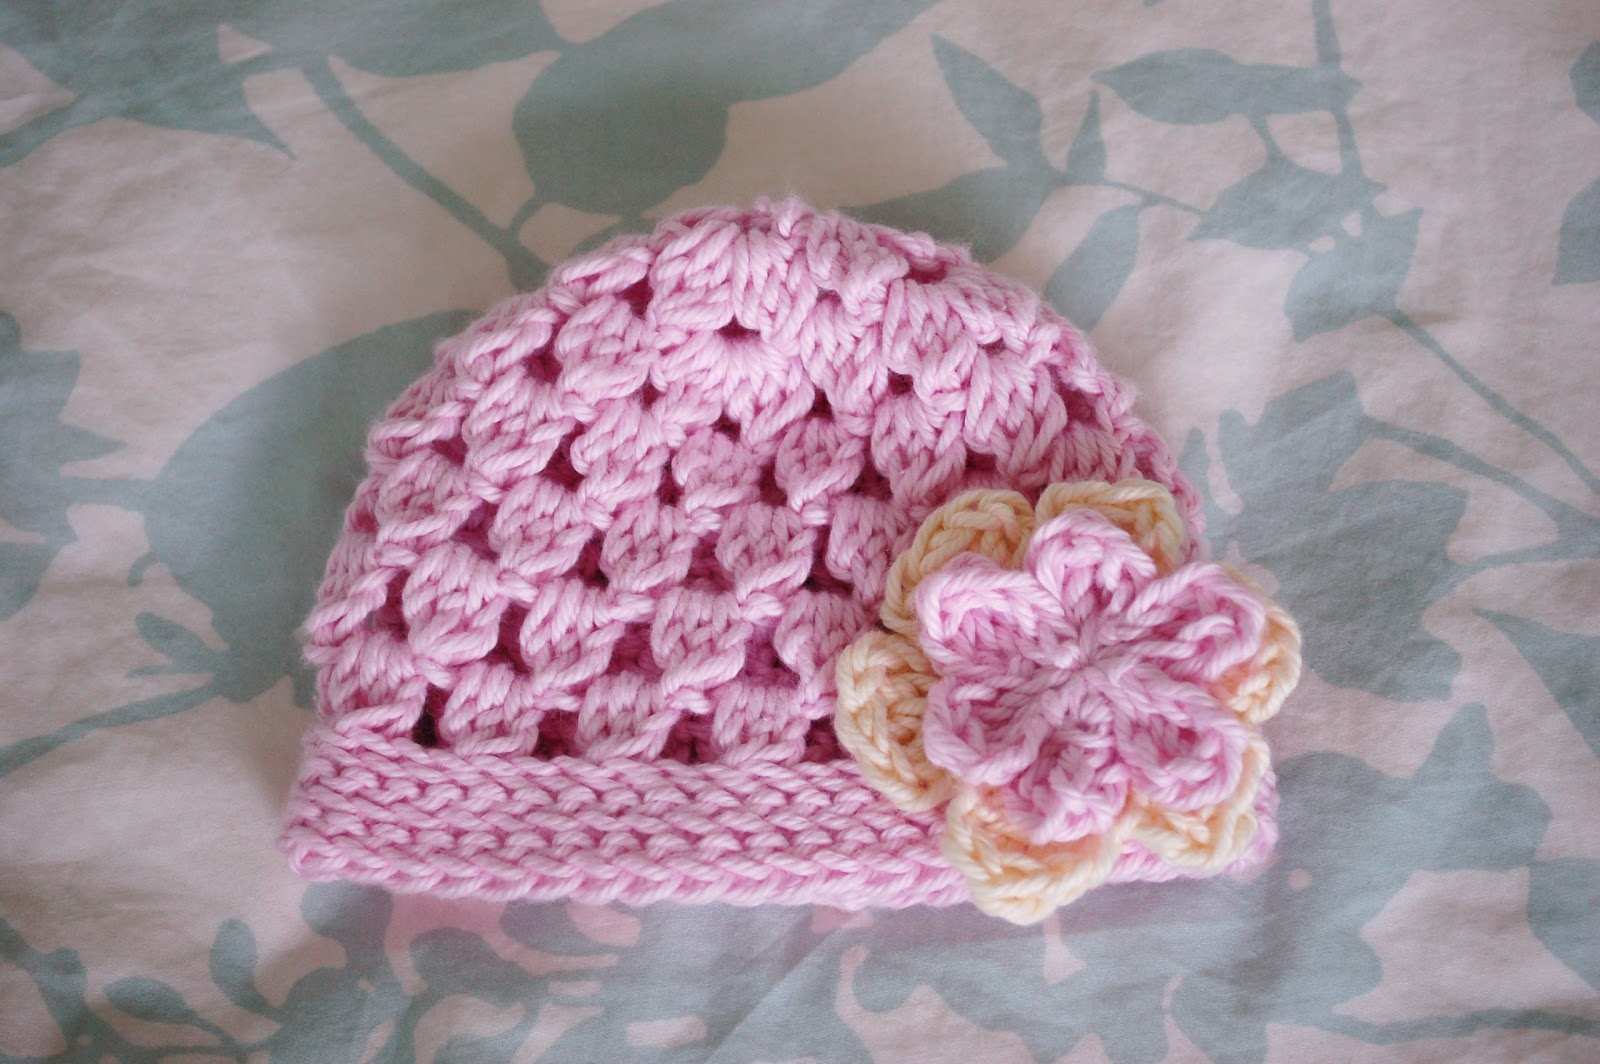 Crochet Patterns Tutorial : Tutorial Treasures: Free Crochet Beanie Pattern